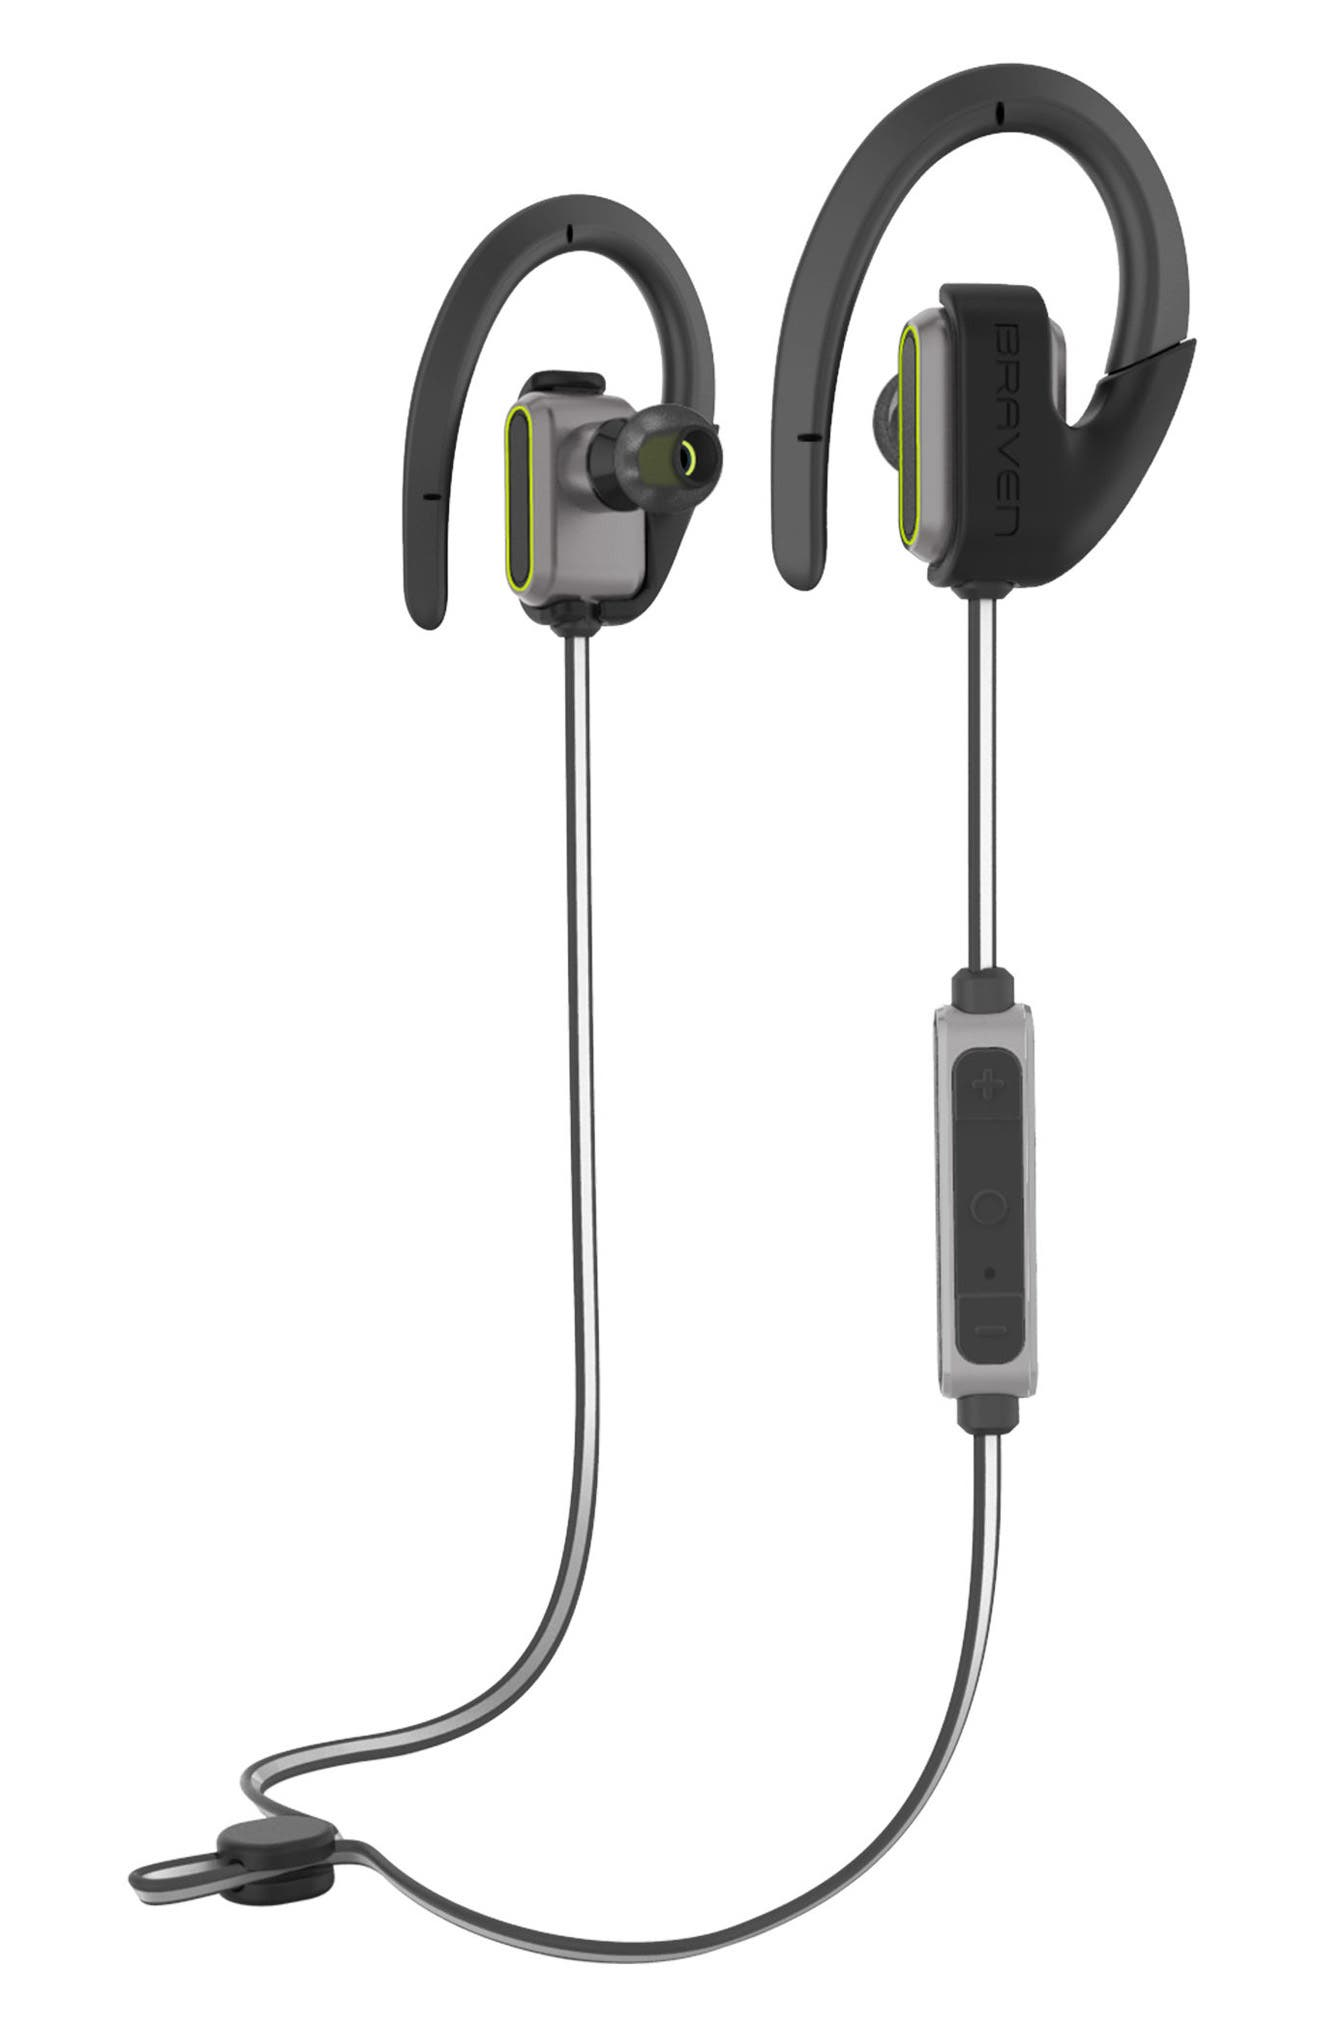 BRAVEN Flye Sport Reflect Bluetooth In-Ear Headphones & Power Bank